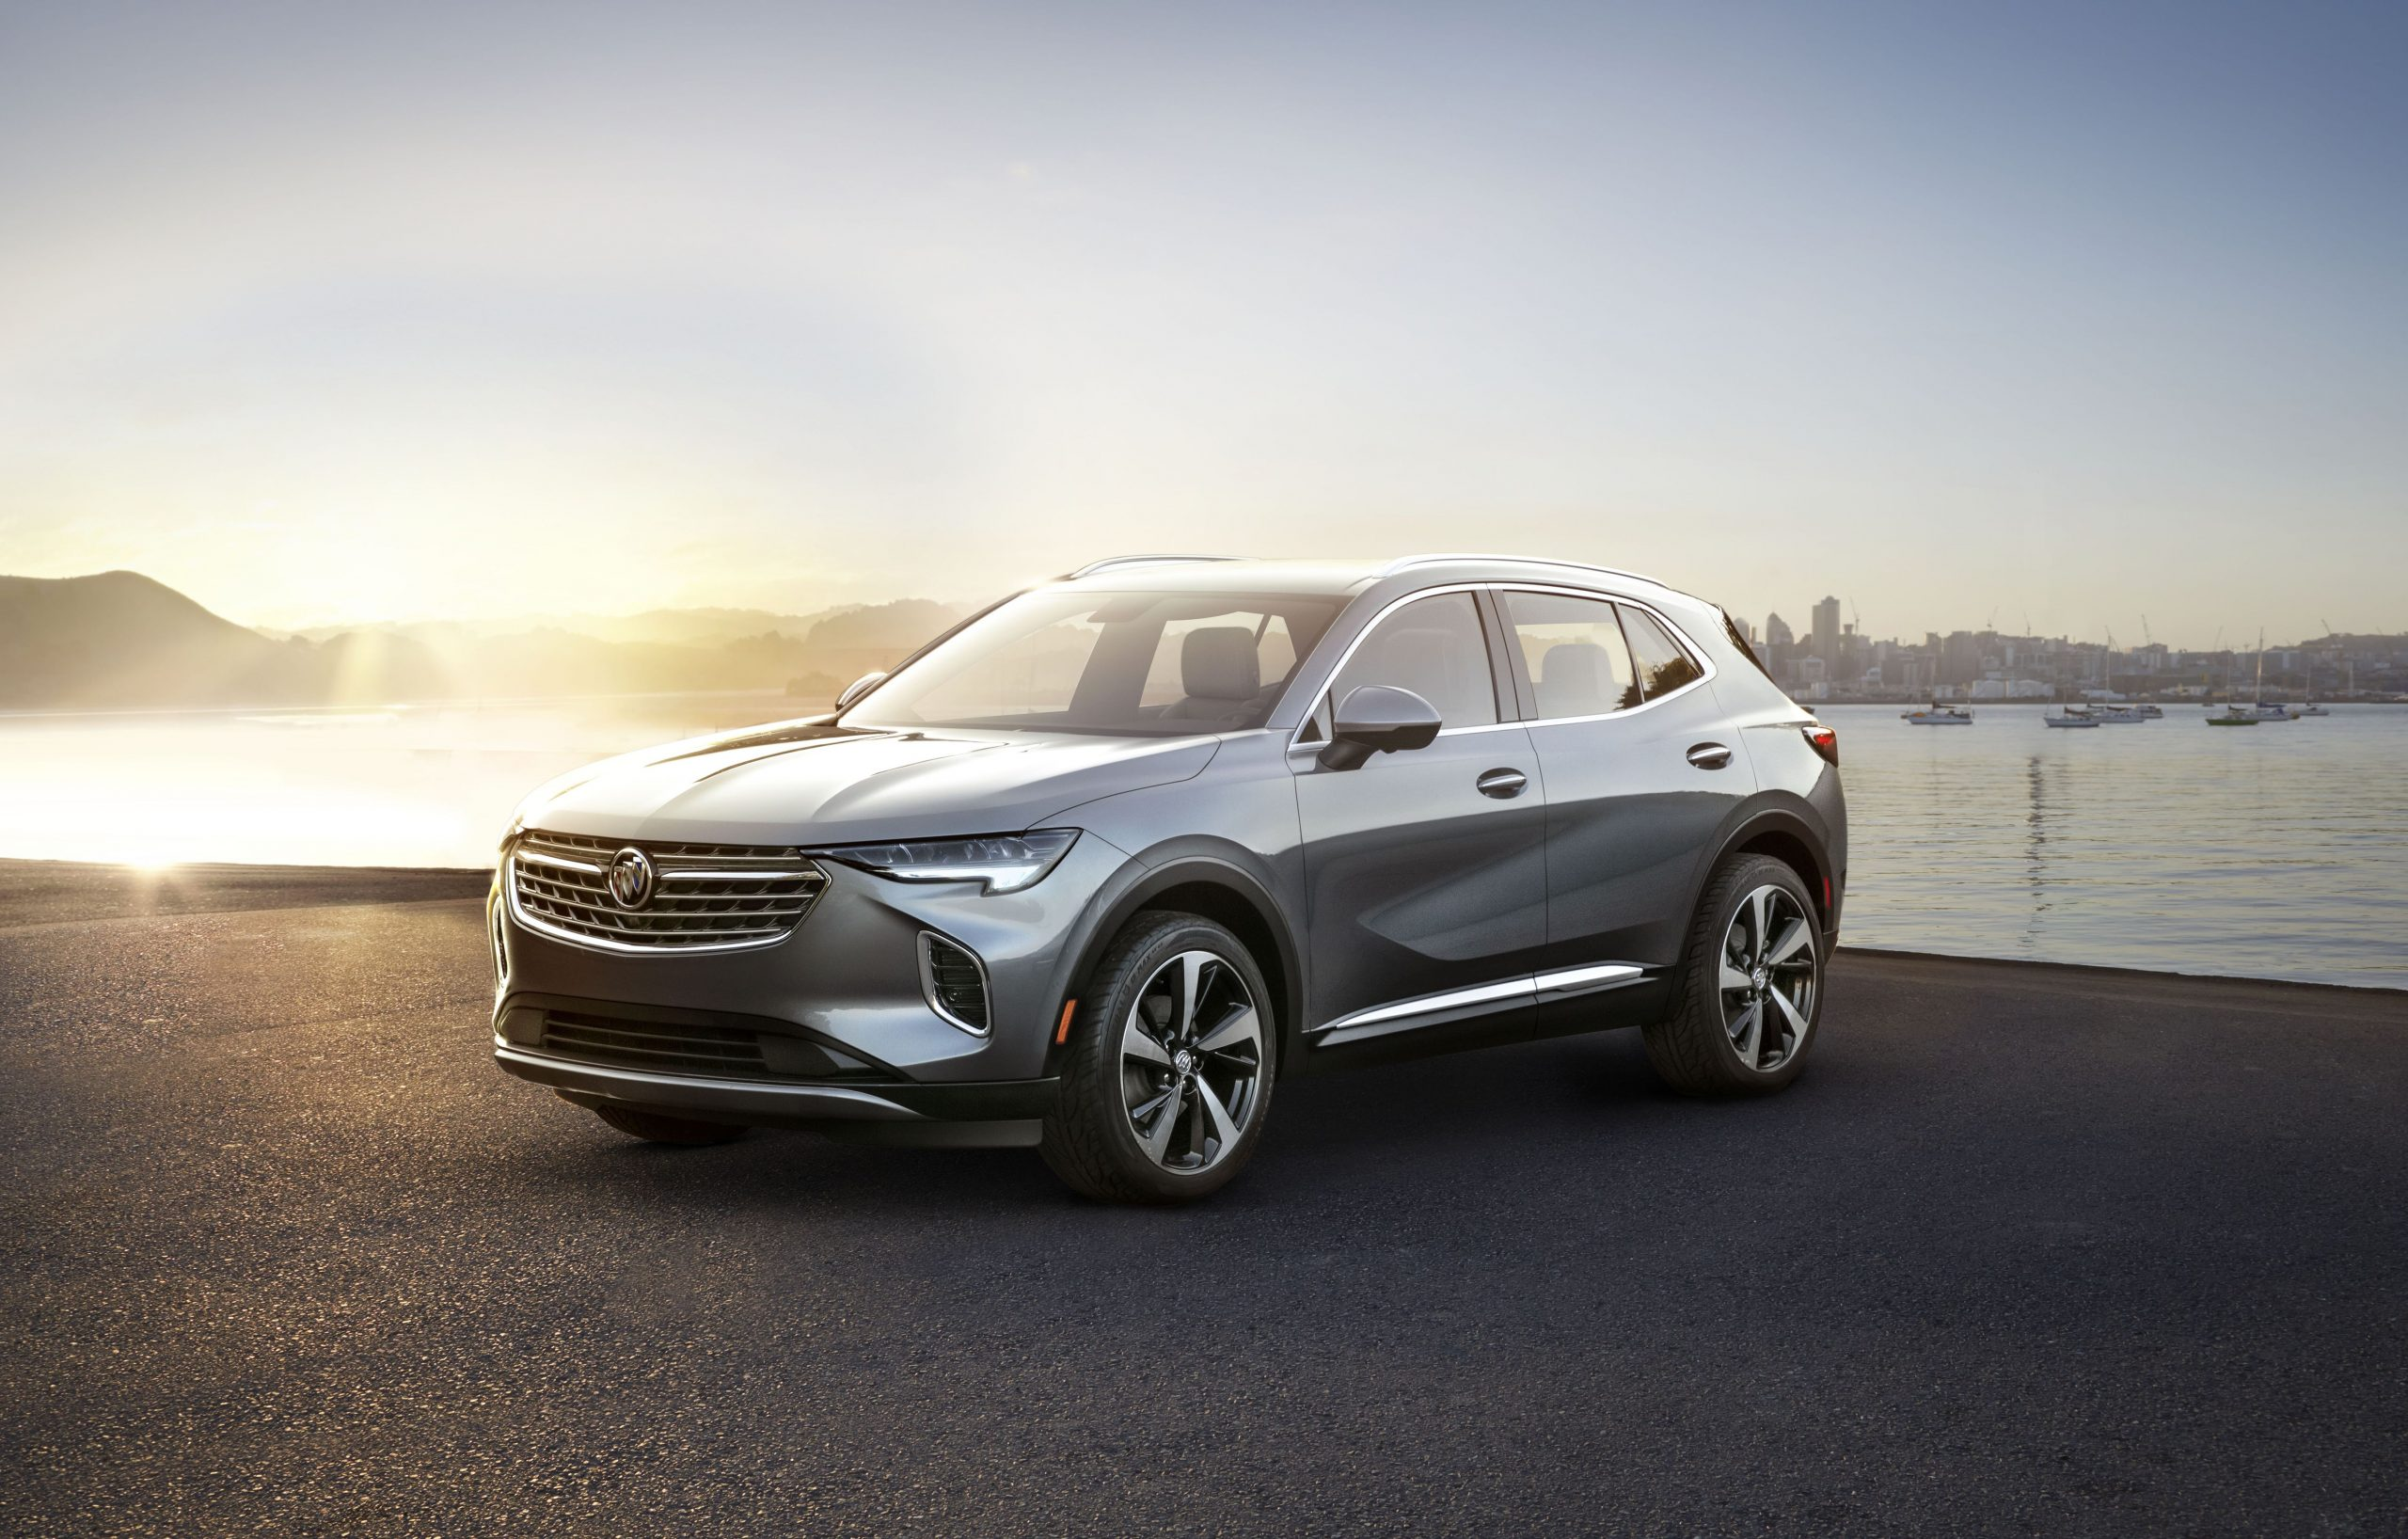 2021 Buick Envision Gets A Surprisingly Attractive Redesign Is The New 2022 Buick Envision A Good Car